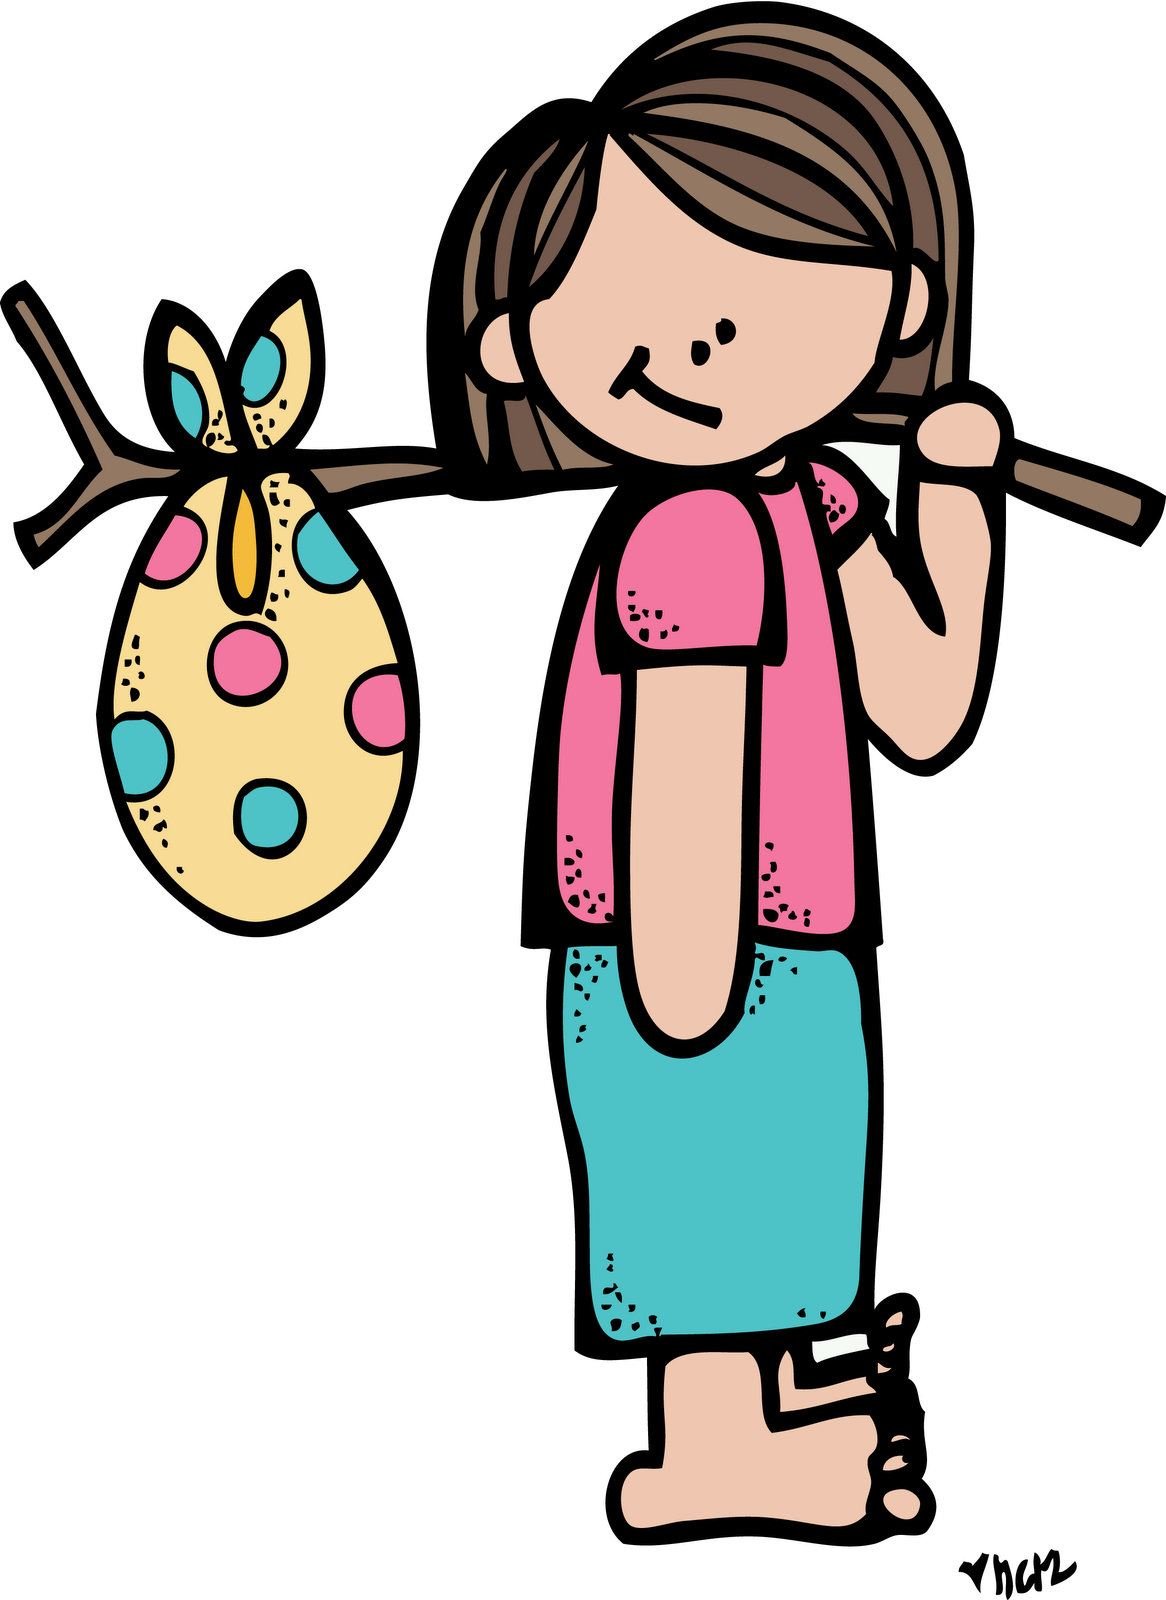 Girl leaving house clipart.